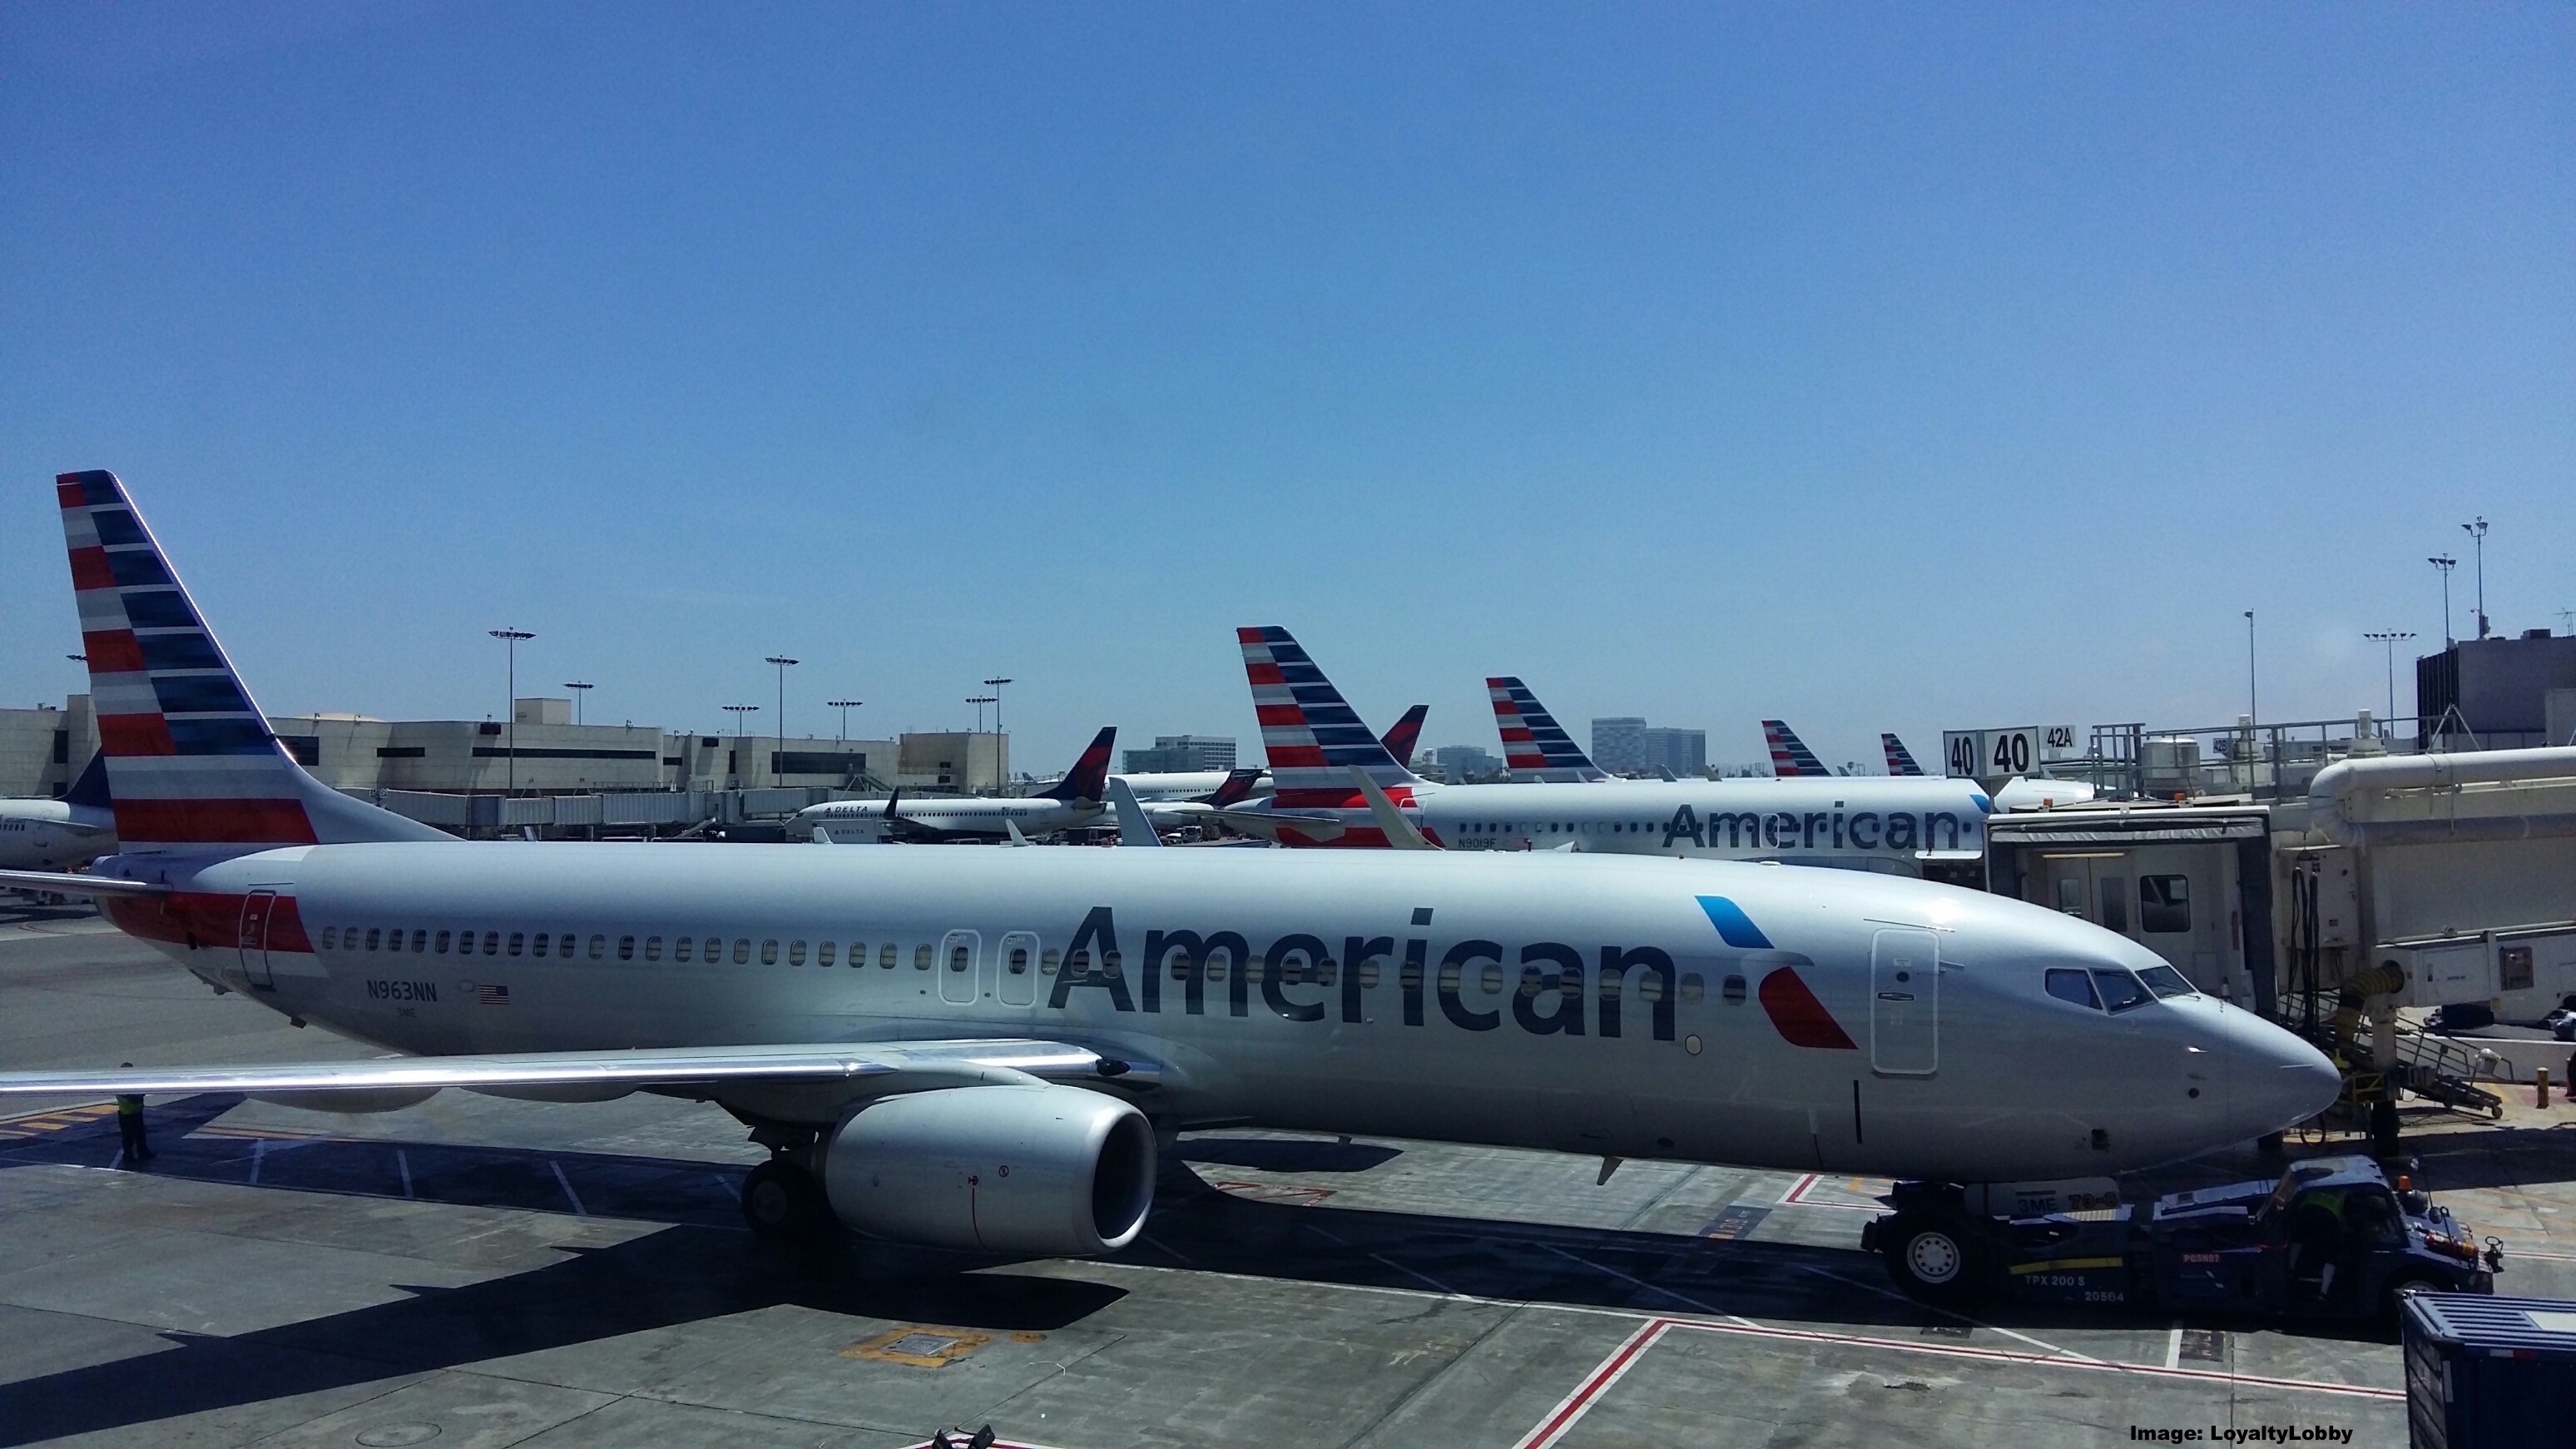 Disgruntled American Airlines Mechanic Arrested In Miami For